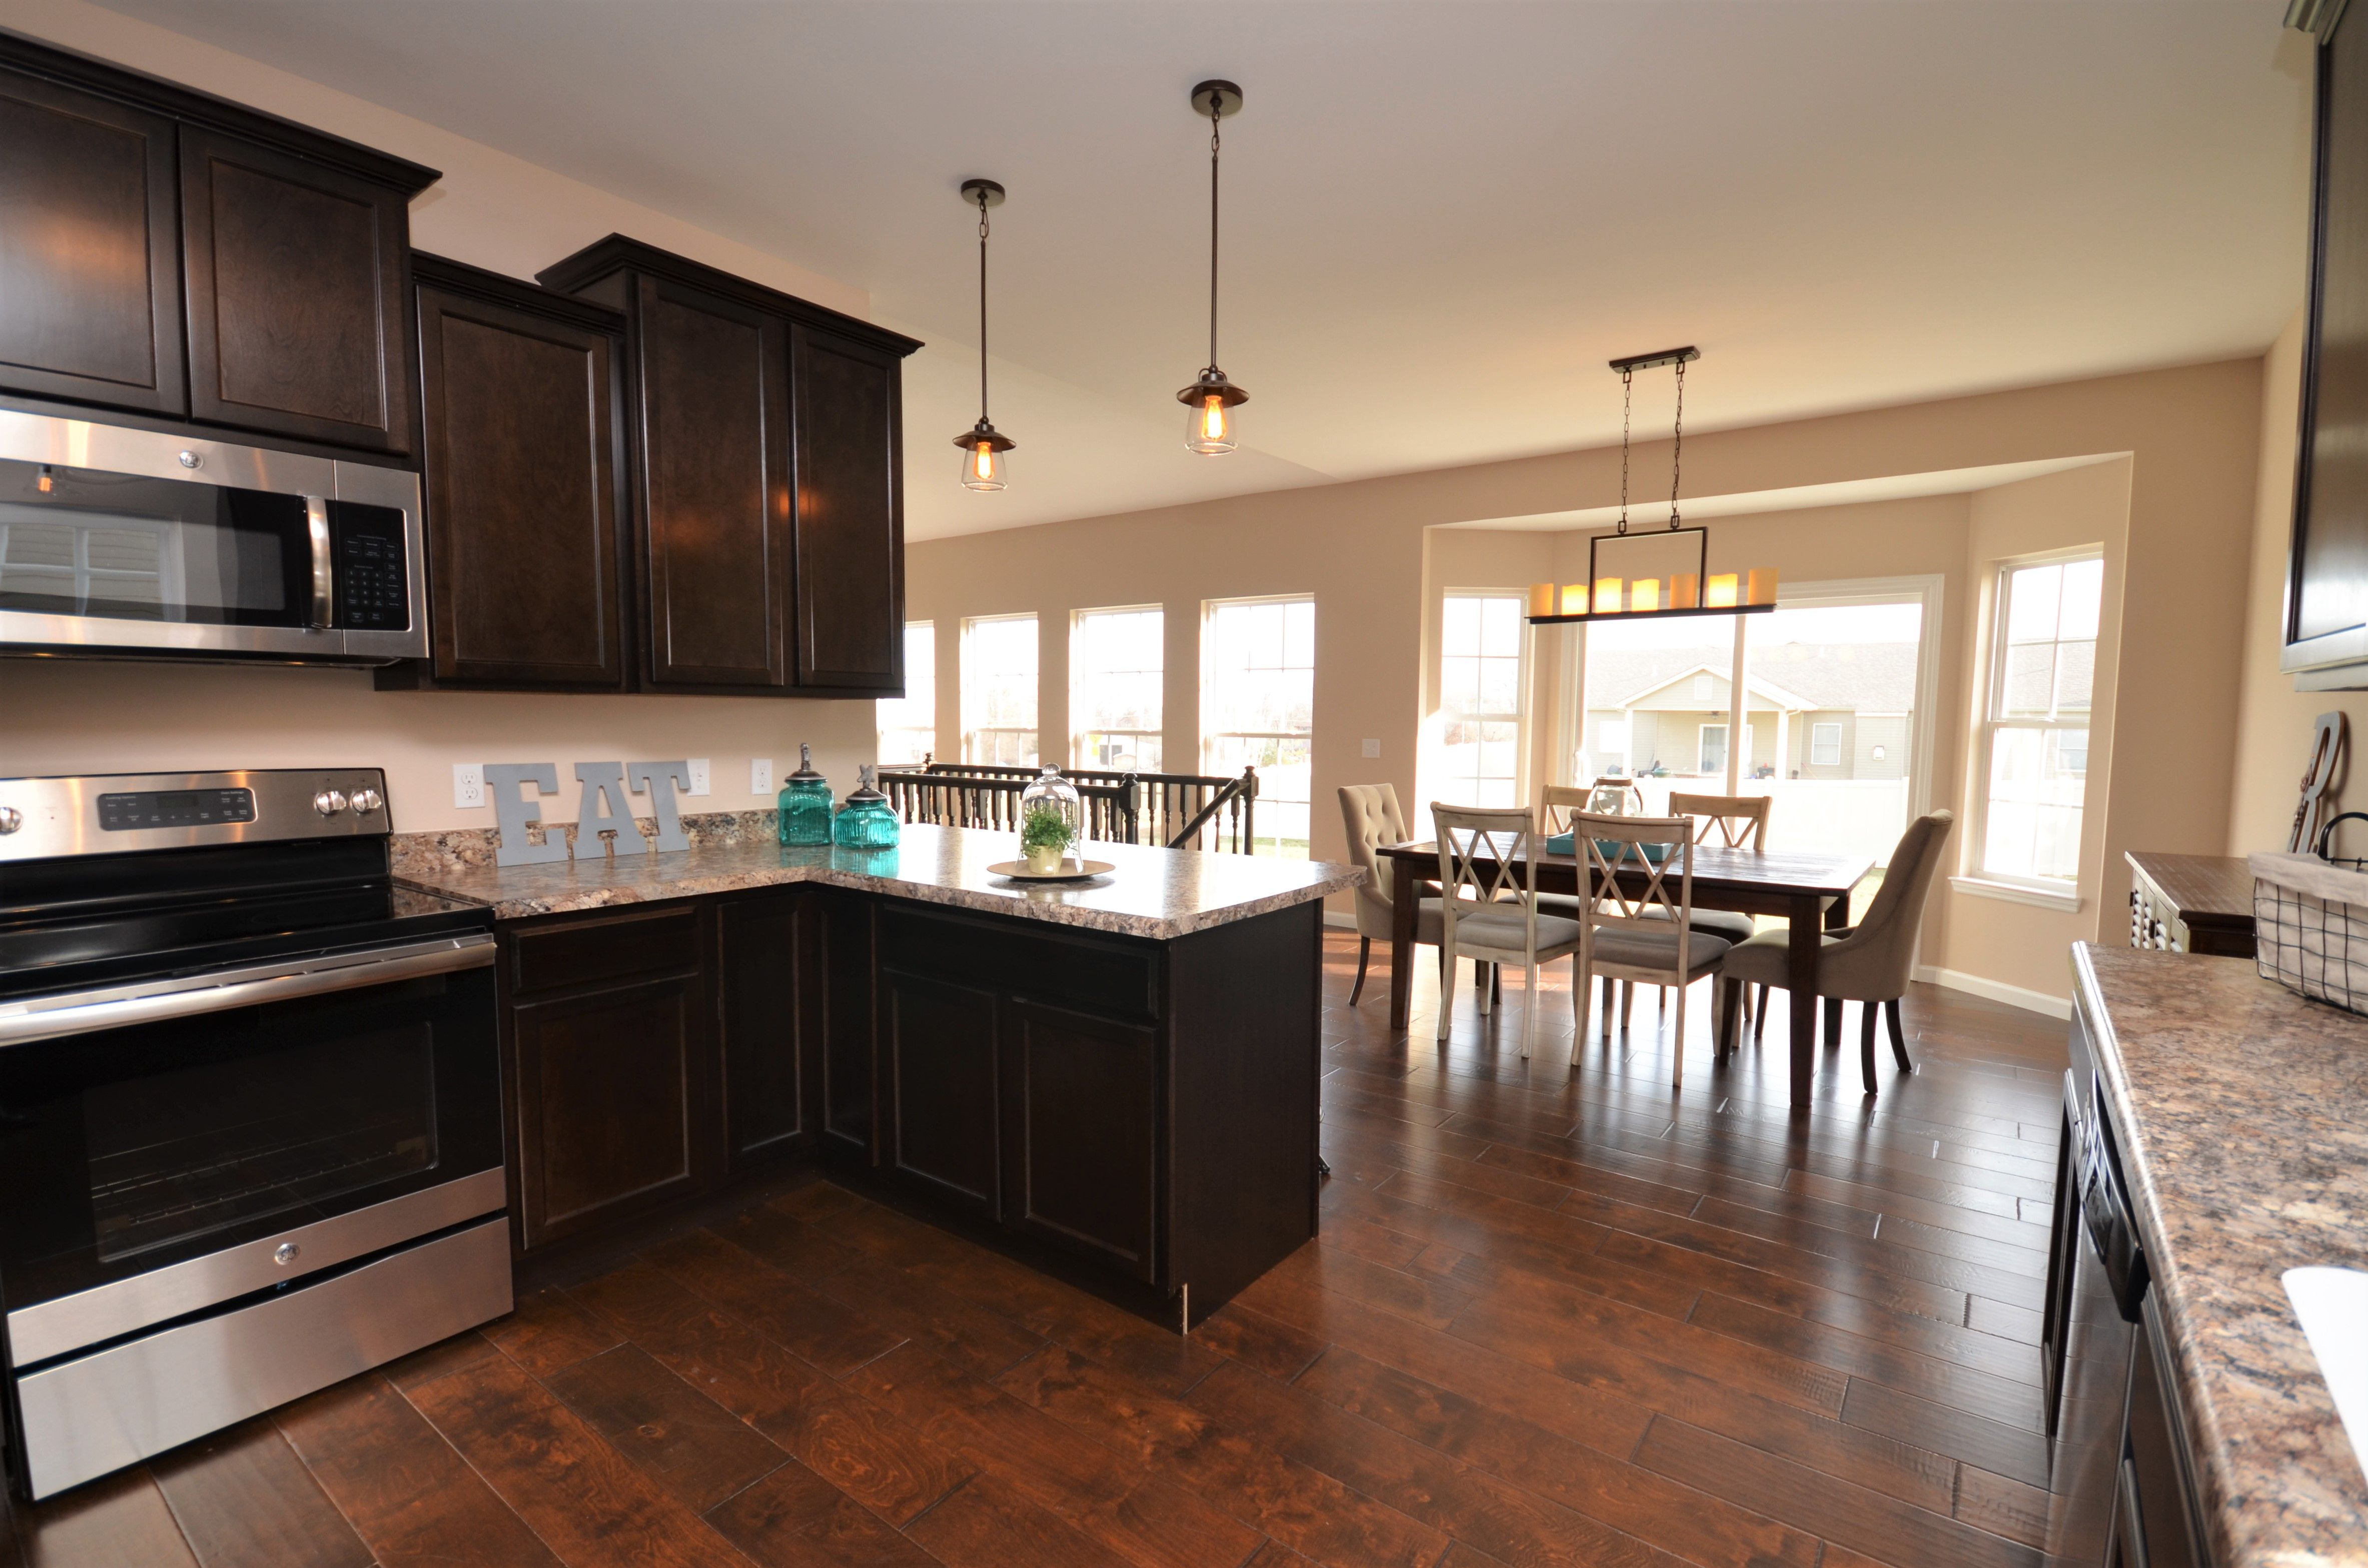 Kitchen featured in The Maplewood By Cannon Builders, Inc.  in St. Louis, MO